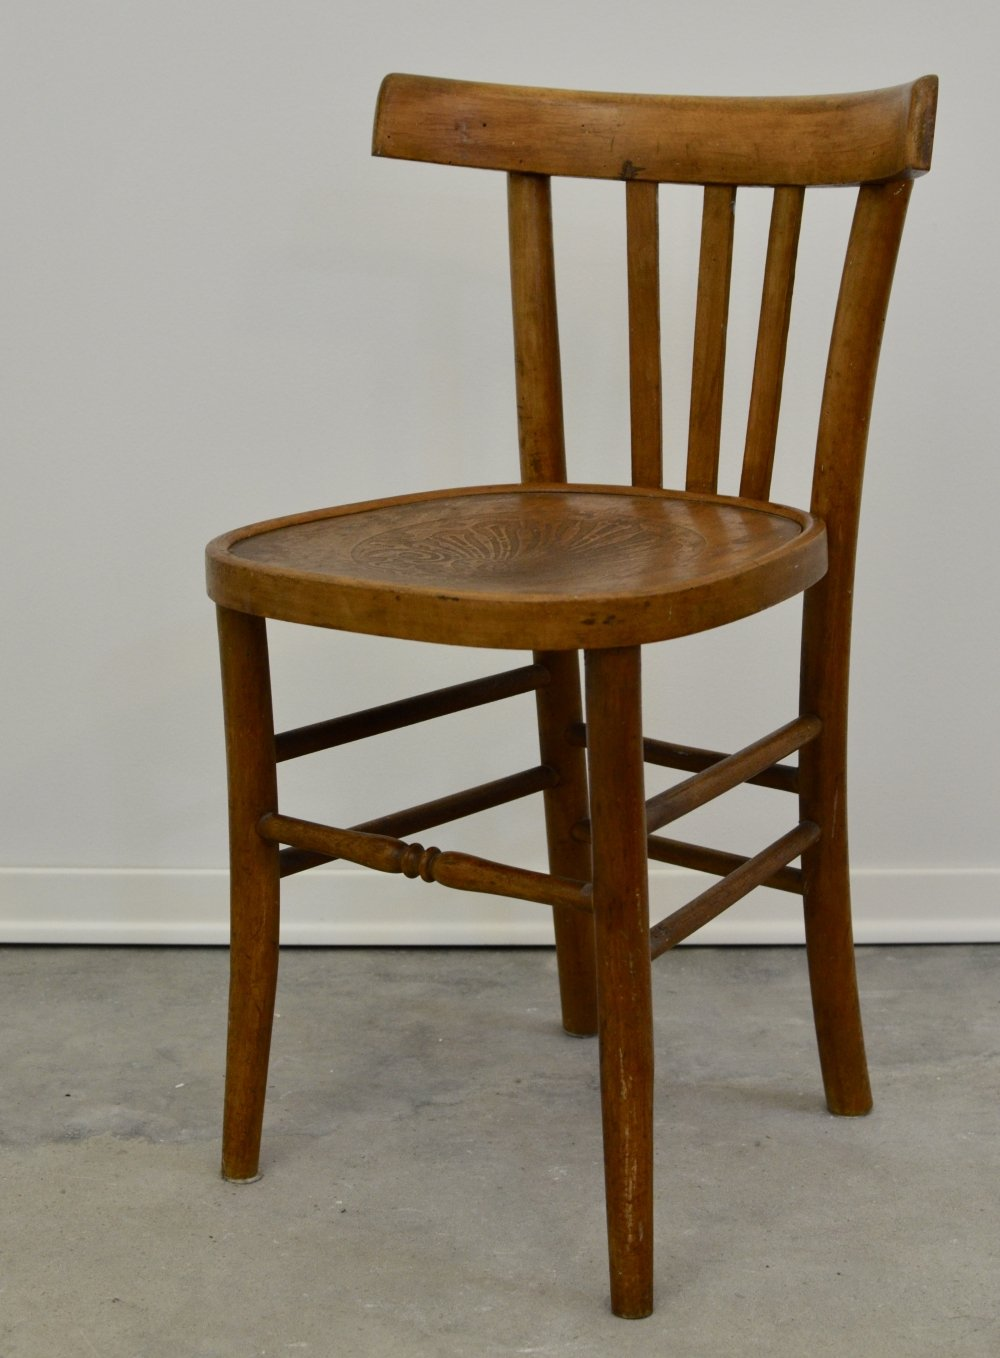 Bistro Chair by Thonet, 1920s